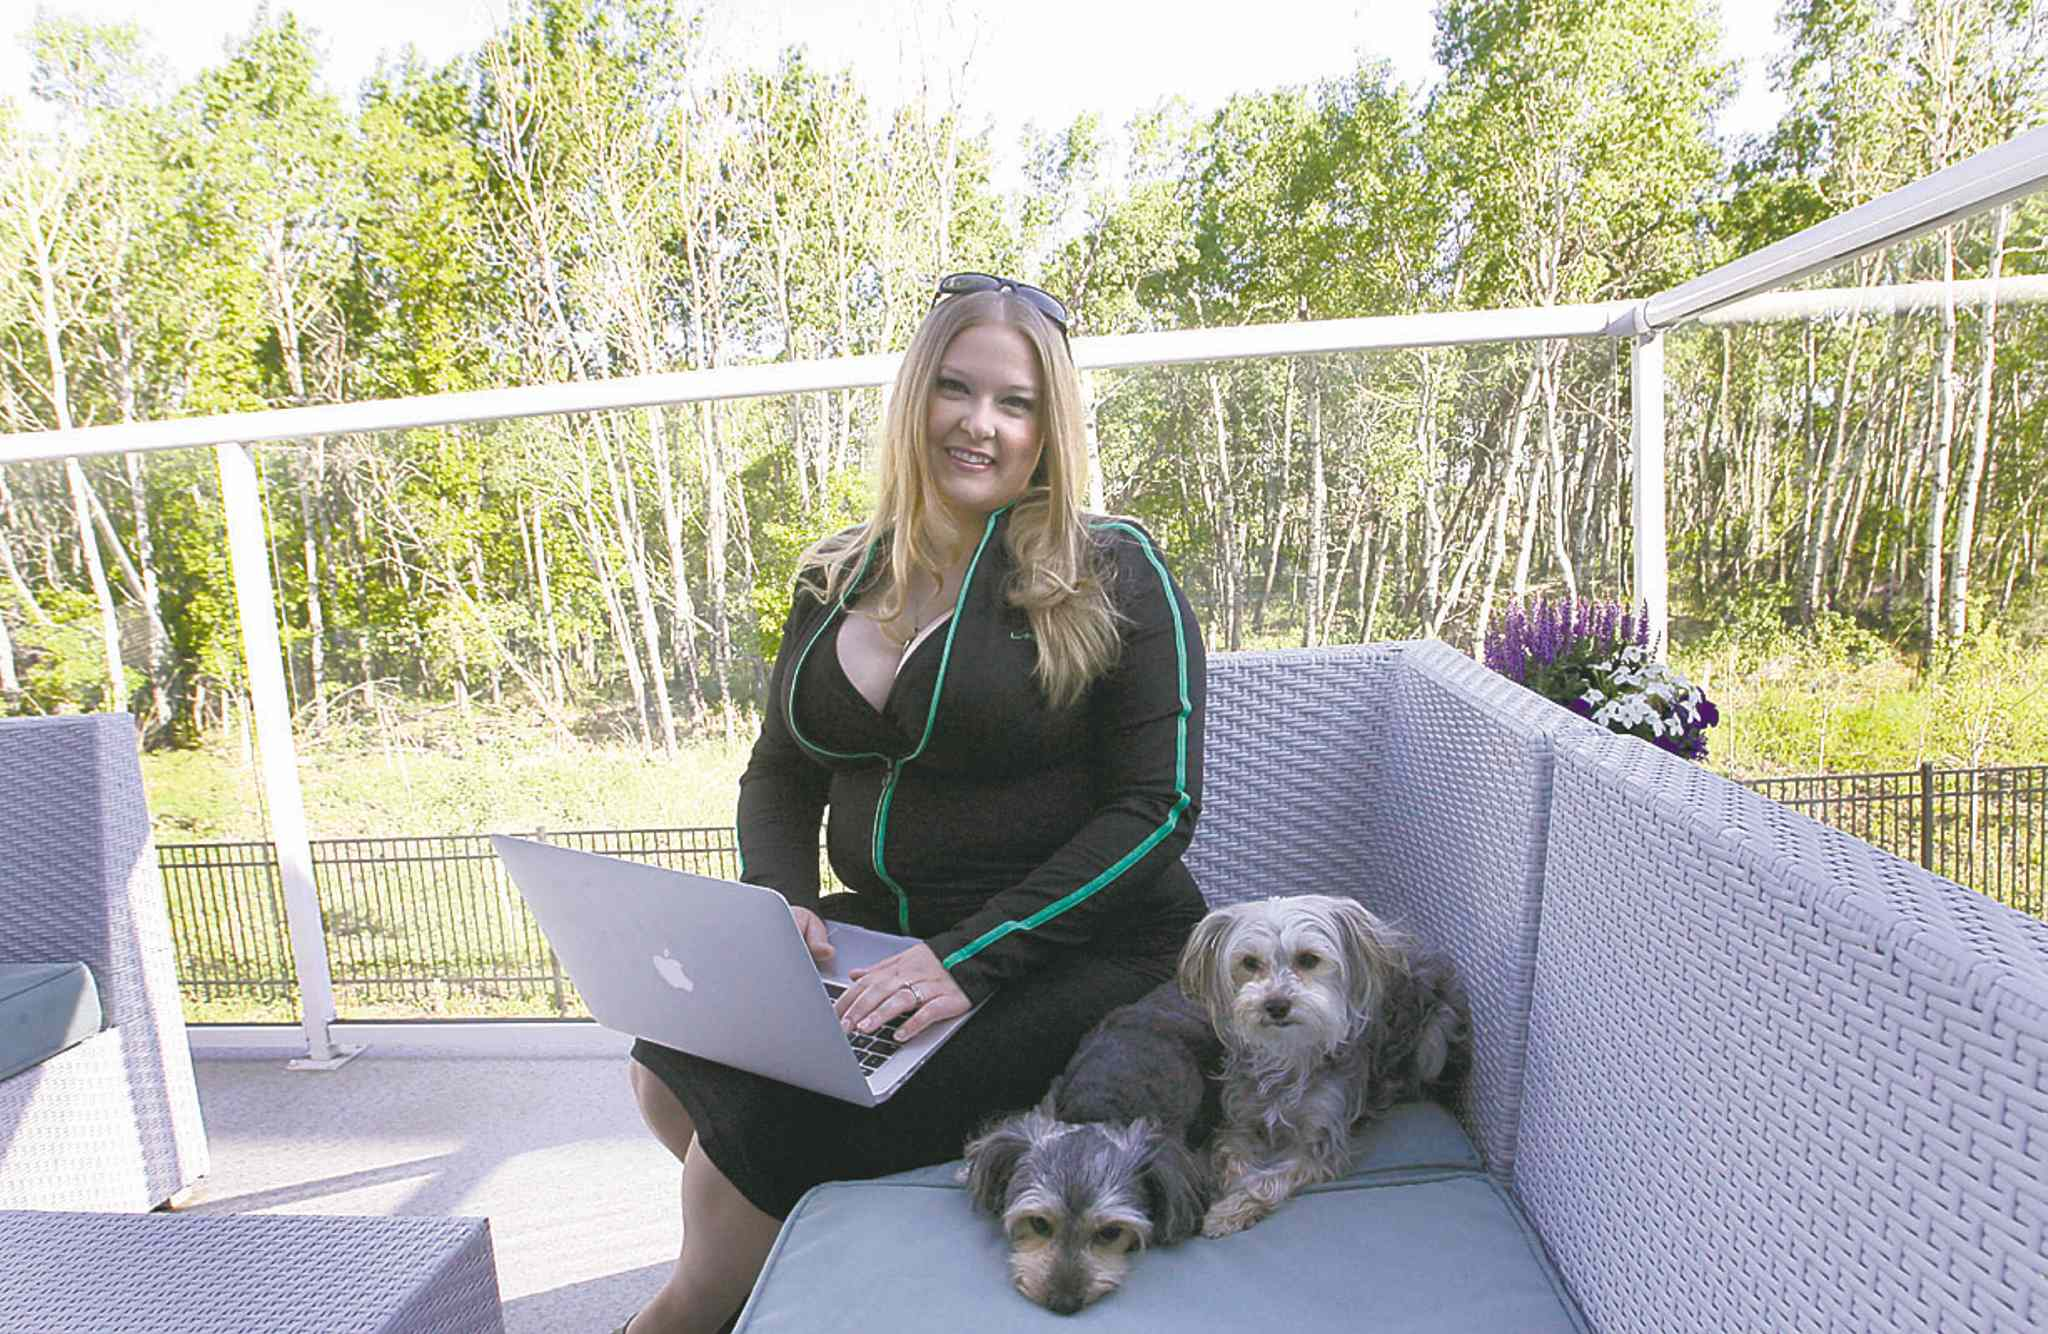 Tara Maltman-Just sits outside on her deck at home with her dogs, Calla and Lilly.